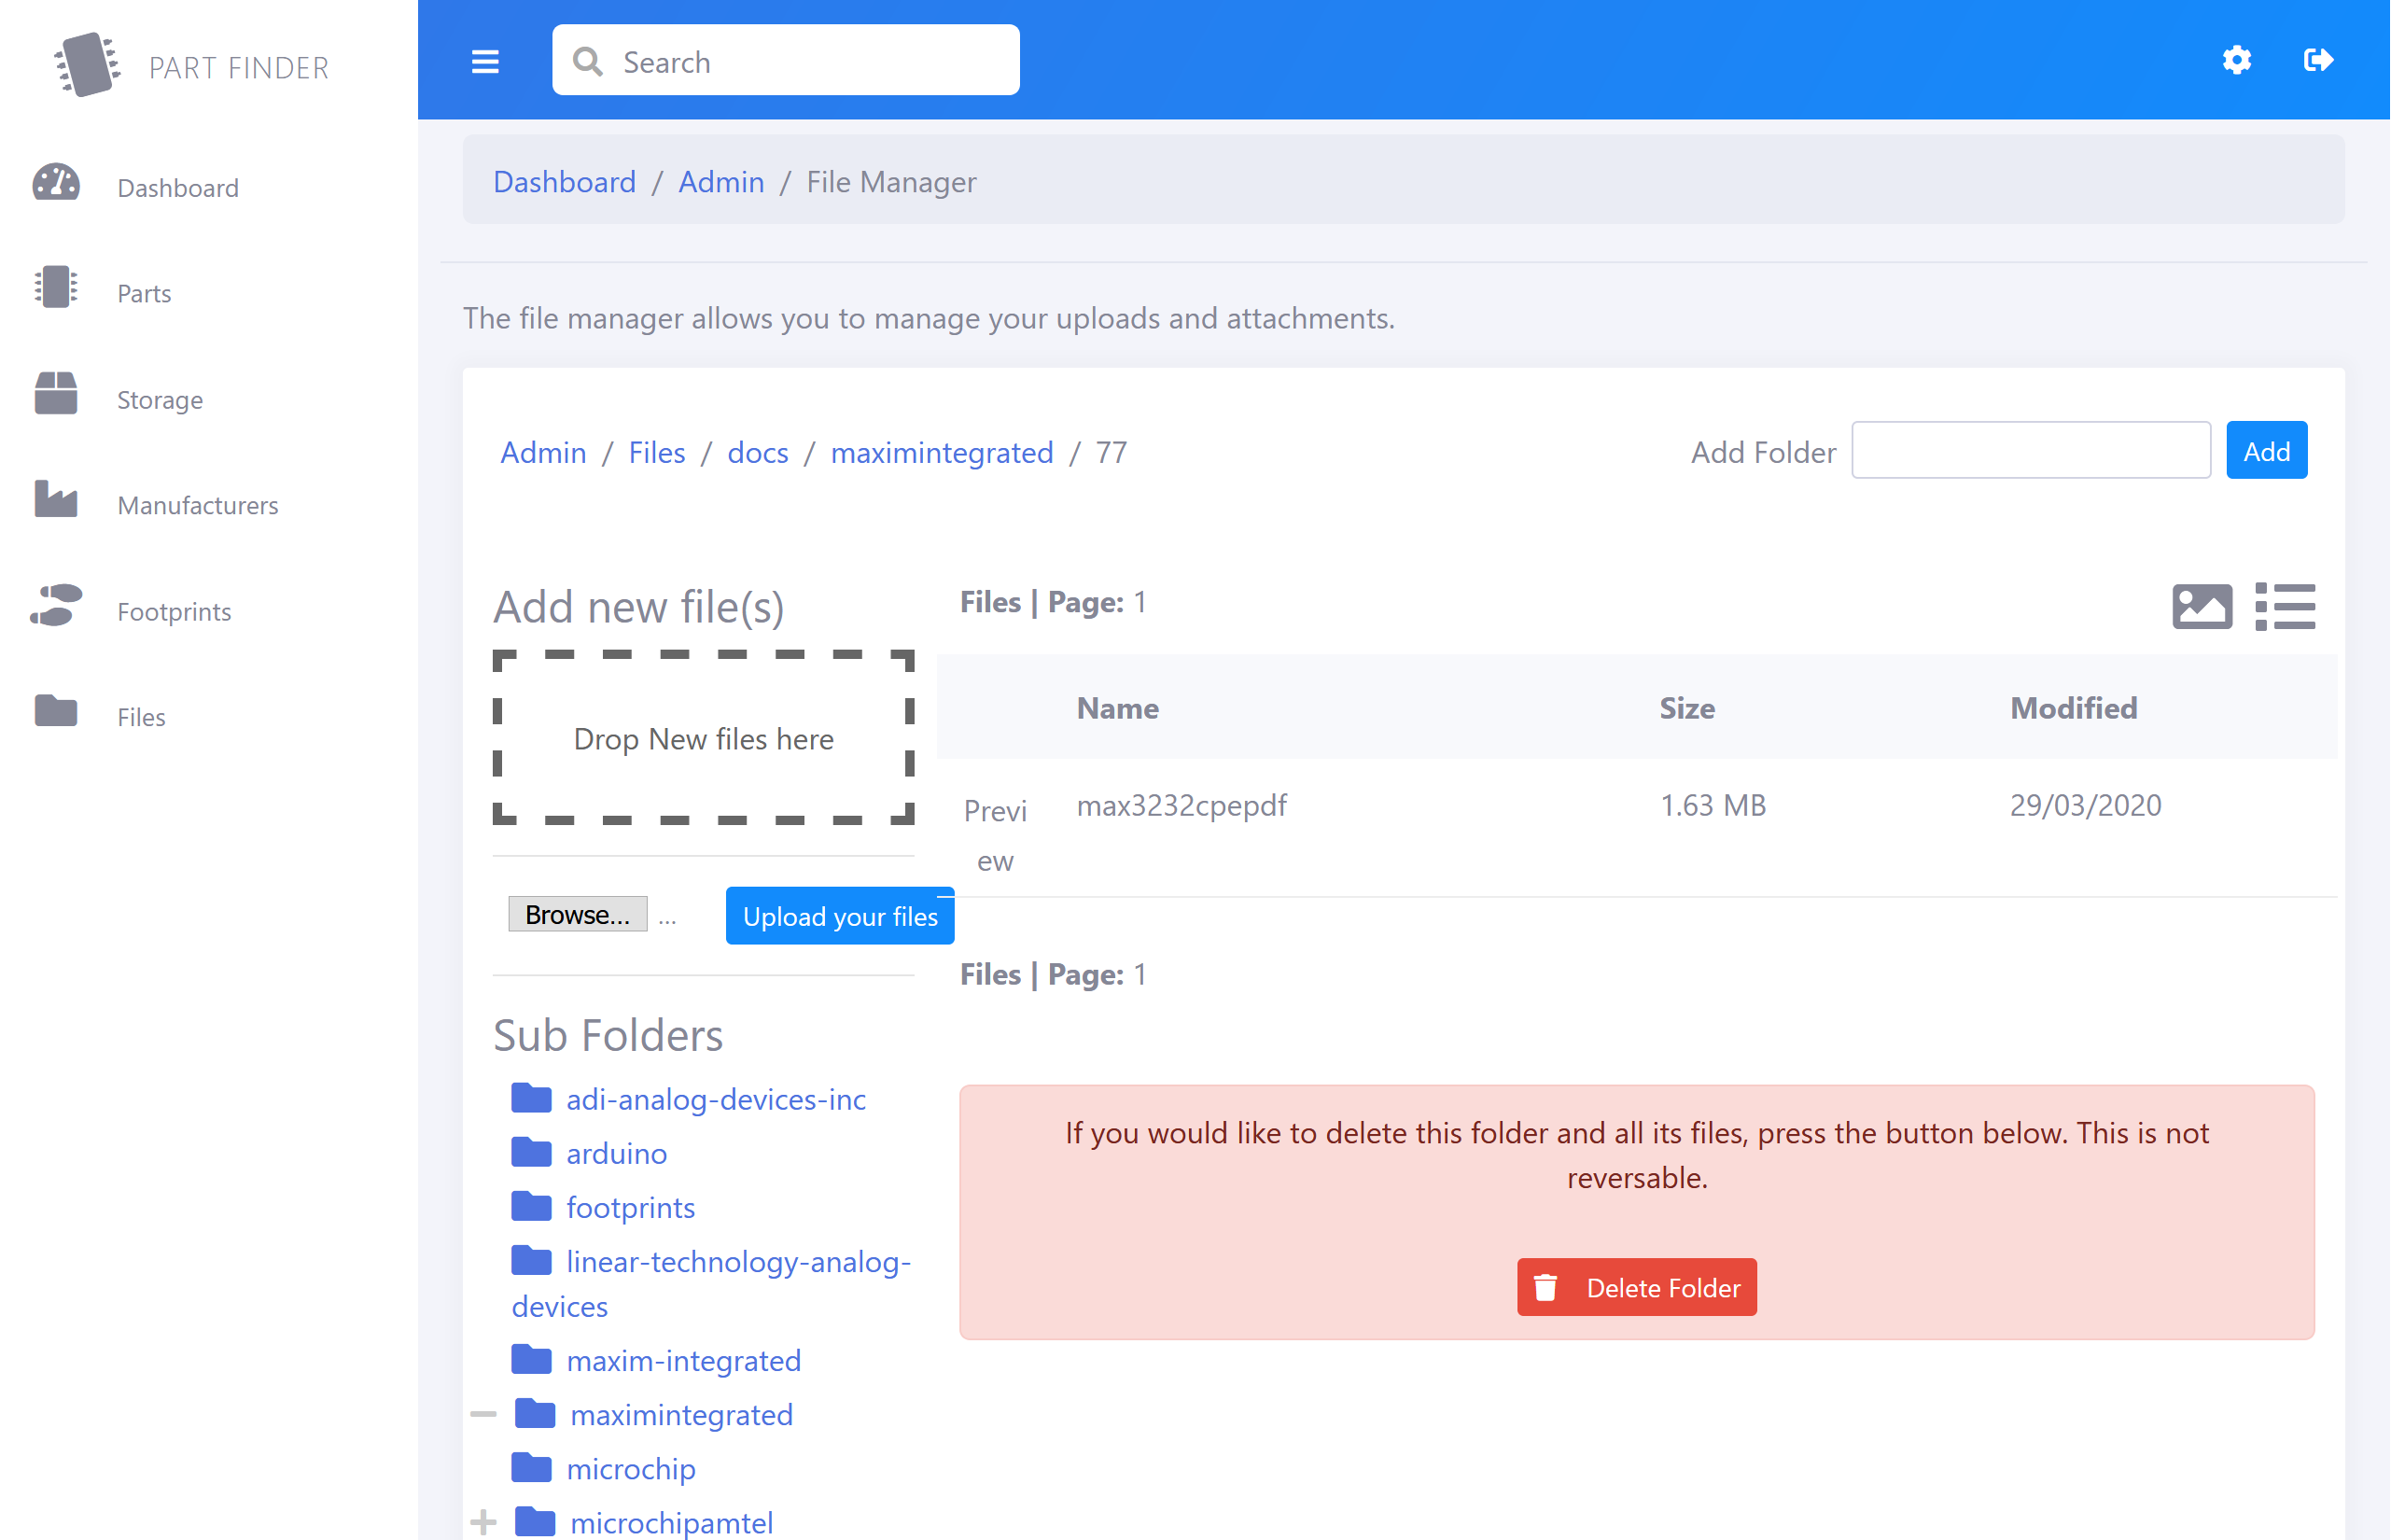 PartFinder component inventory manager Helps You Organize Your Inventories